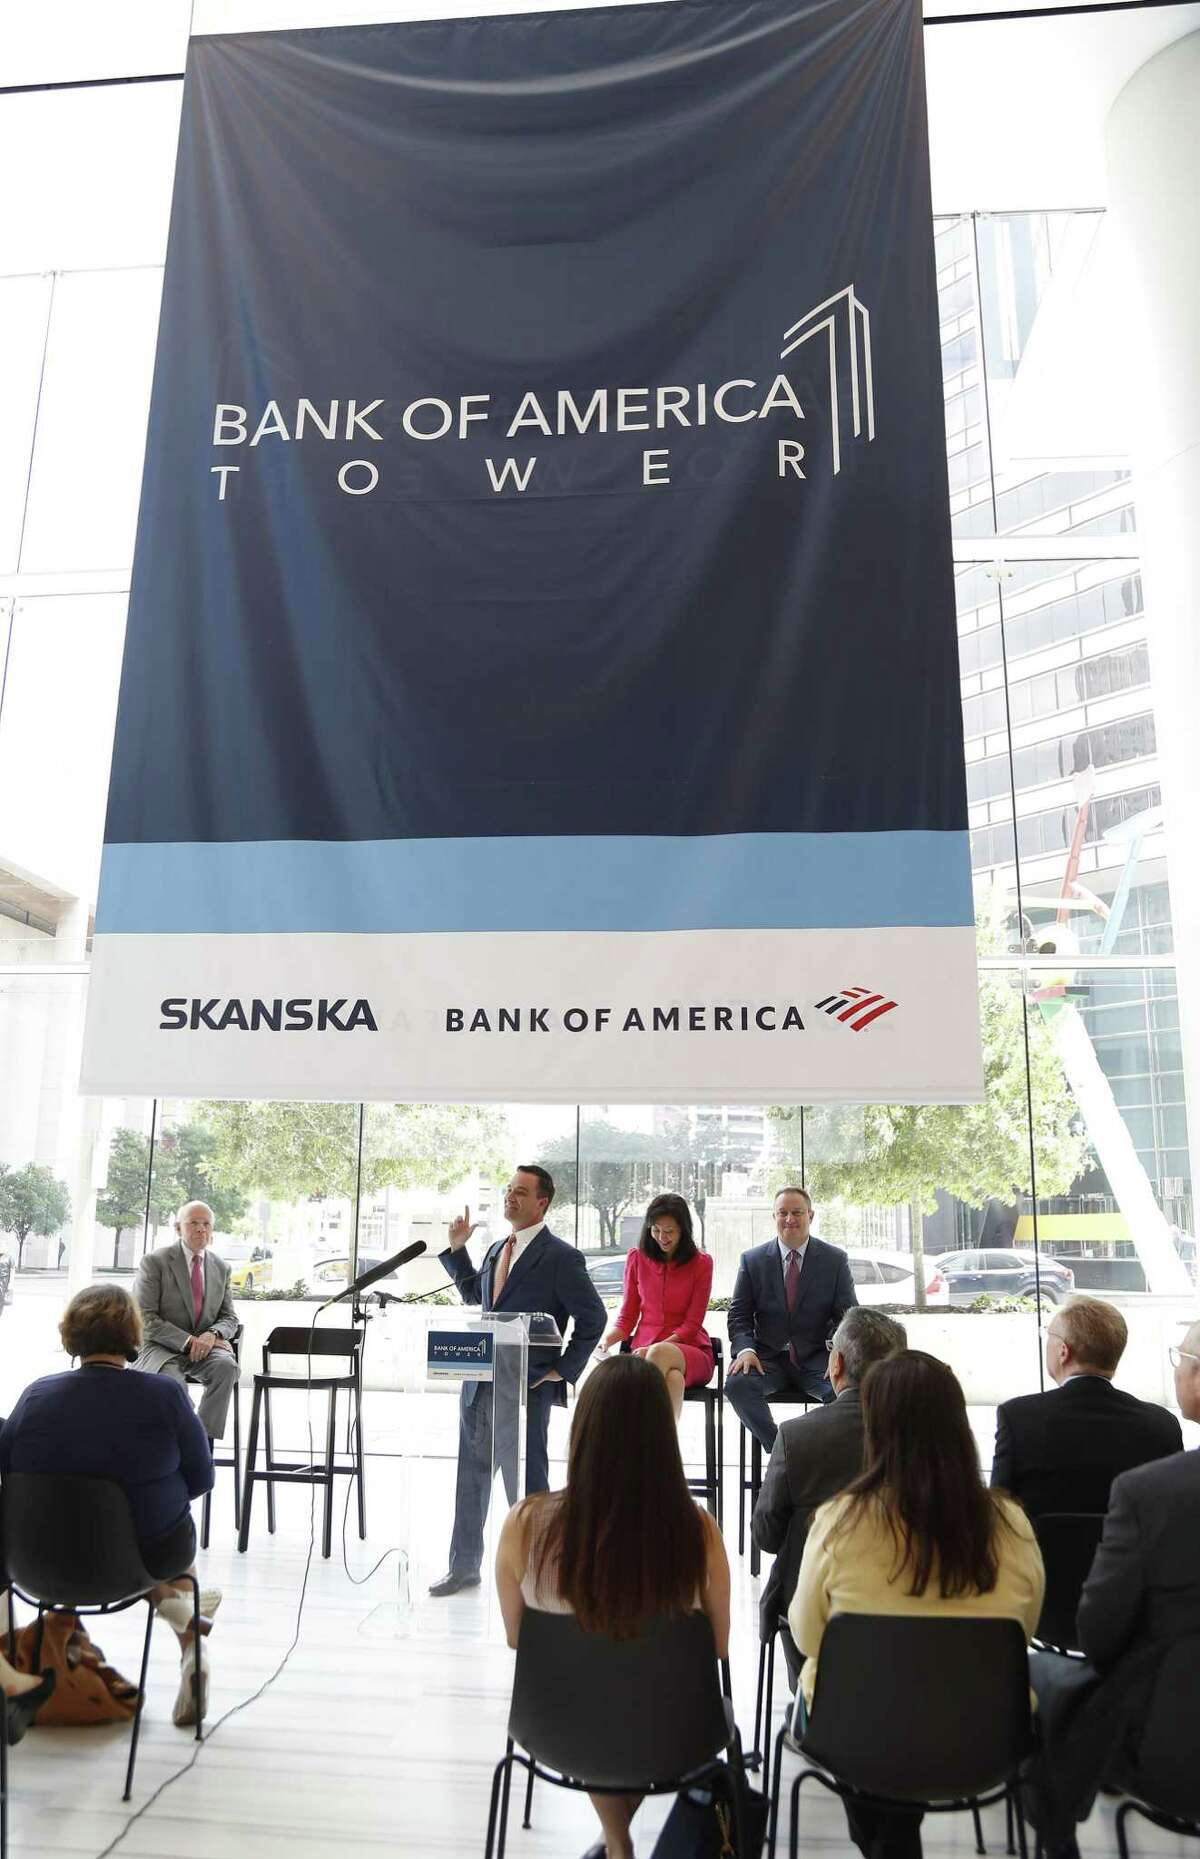 Matt Damborsky, Executive Vice President of Skanska speaks during the unveiling of the new name and logo for the Capitol Tower, now named the Bank of America Tower, Wednesday, May 22, 2019. The Bank of America Tower, a 35-story office building and a development of Skanska in downtown, has been under construction for the last two years at 800 Capitol St.